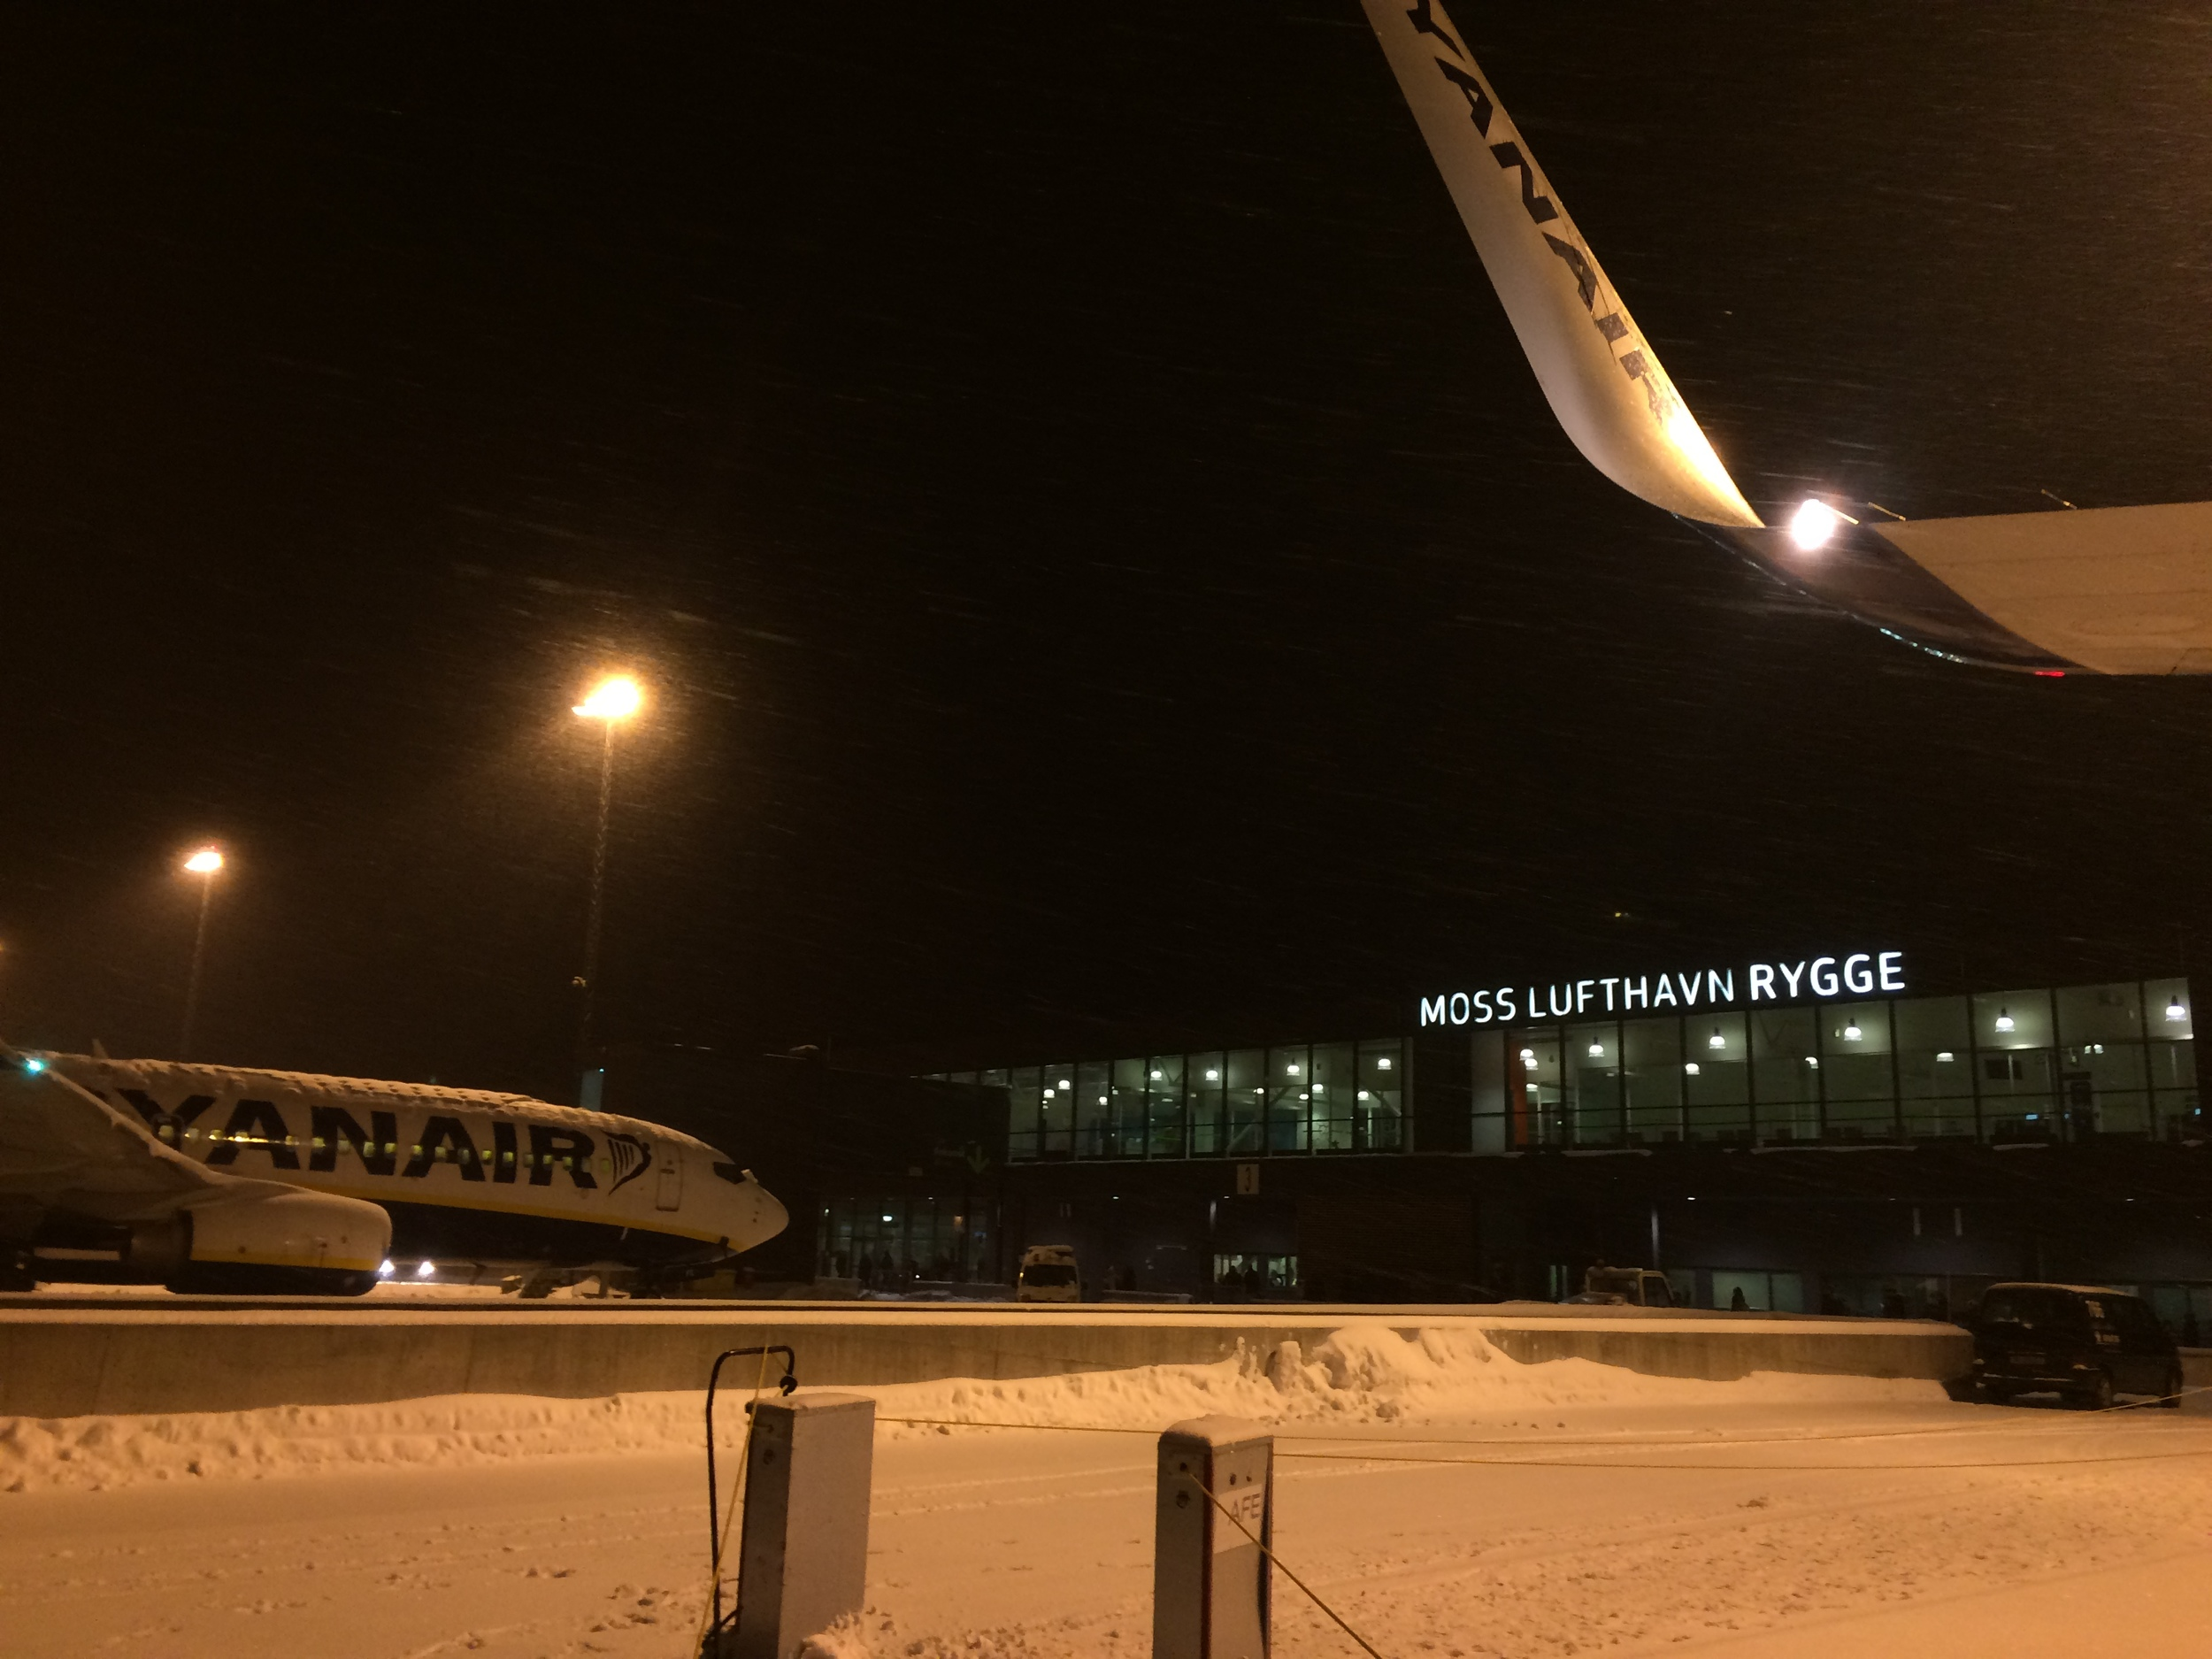 Getting off the plane at Moss Rygge airport.